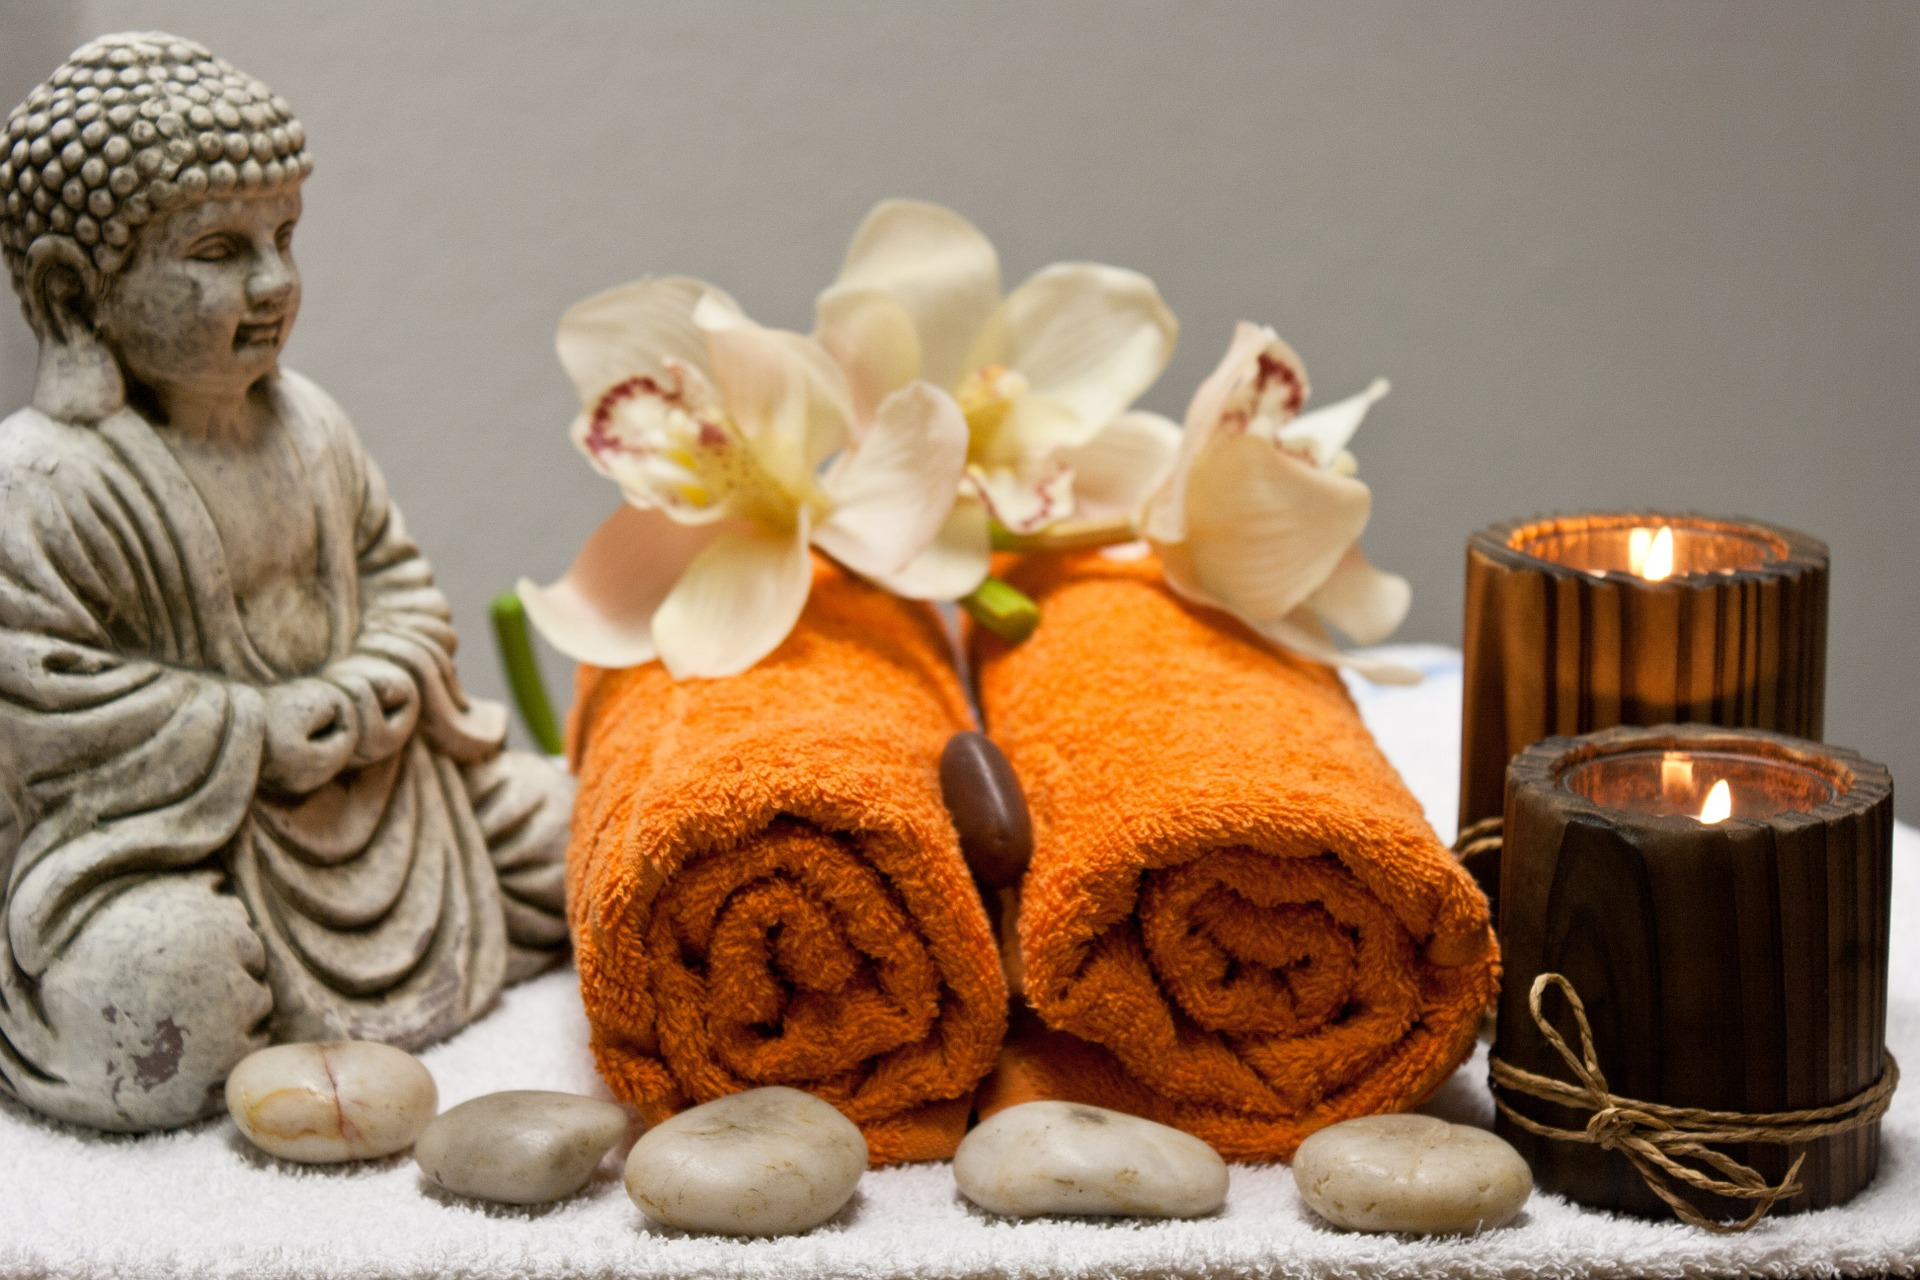 Sawadee Thai Massage - Thai Oil Massage, Thai Aomatherapy, Thai Sport Massage, Thai Traditional Massage, Thai Foot Massage και  Thai Antistress Massage